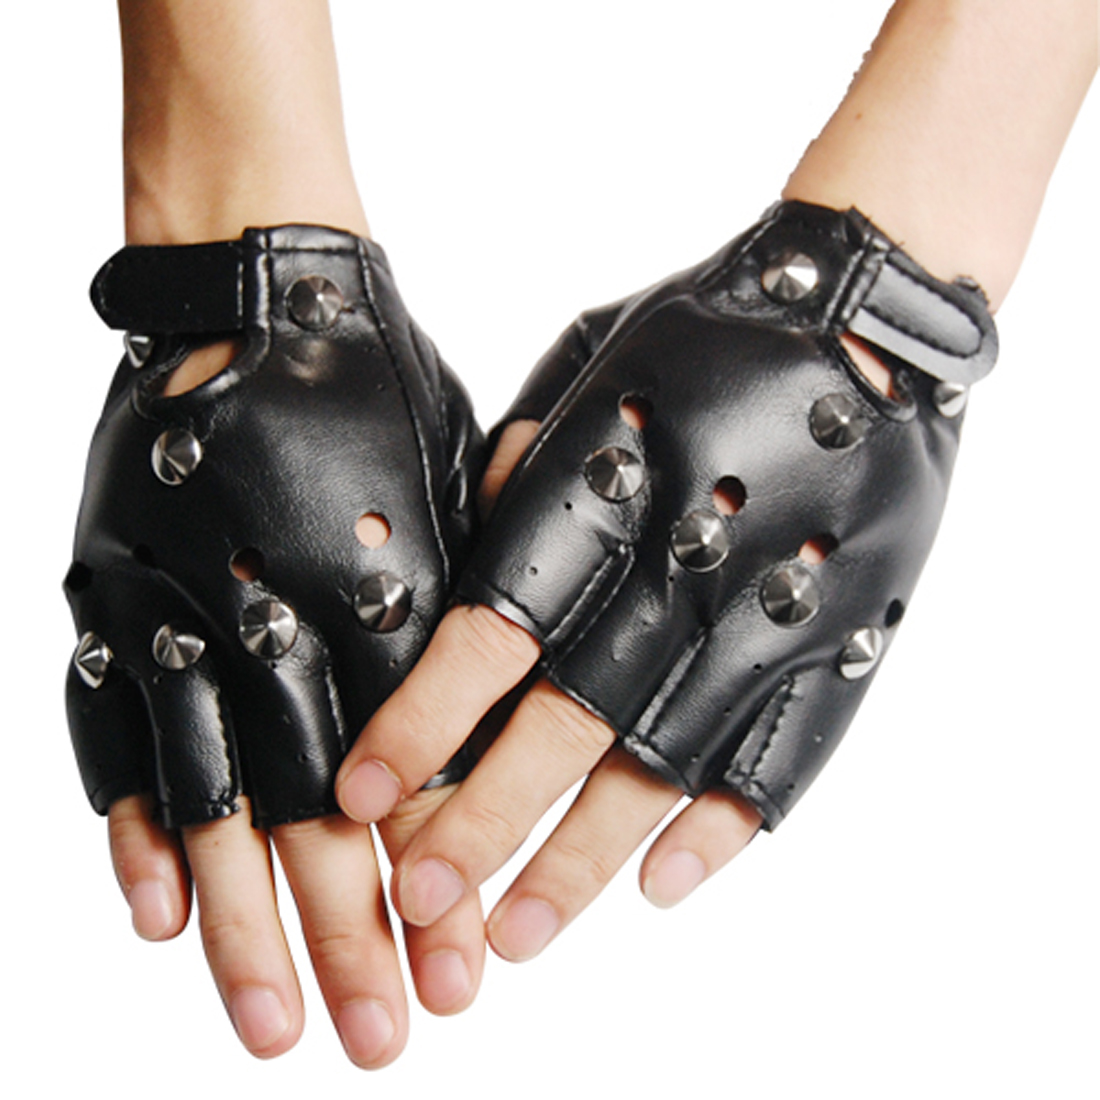 Long black leather gloves prices - Black Leather Dress Gloves